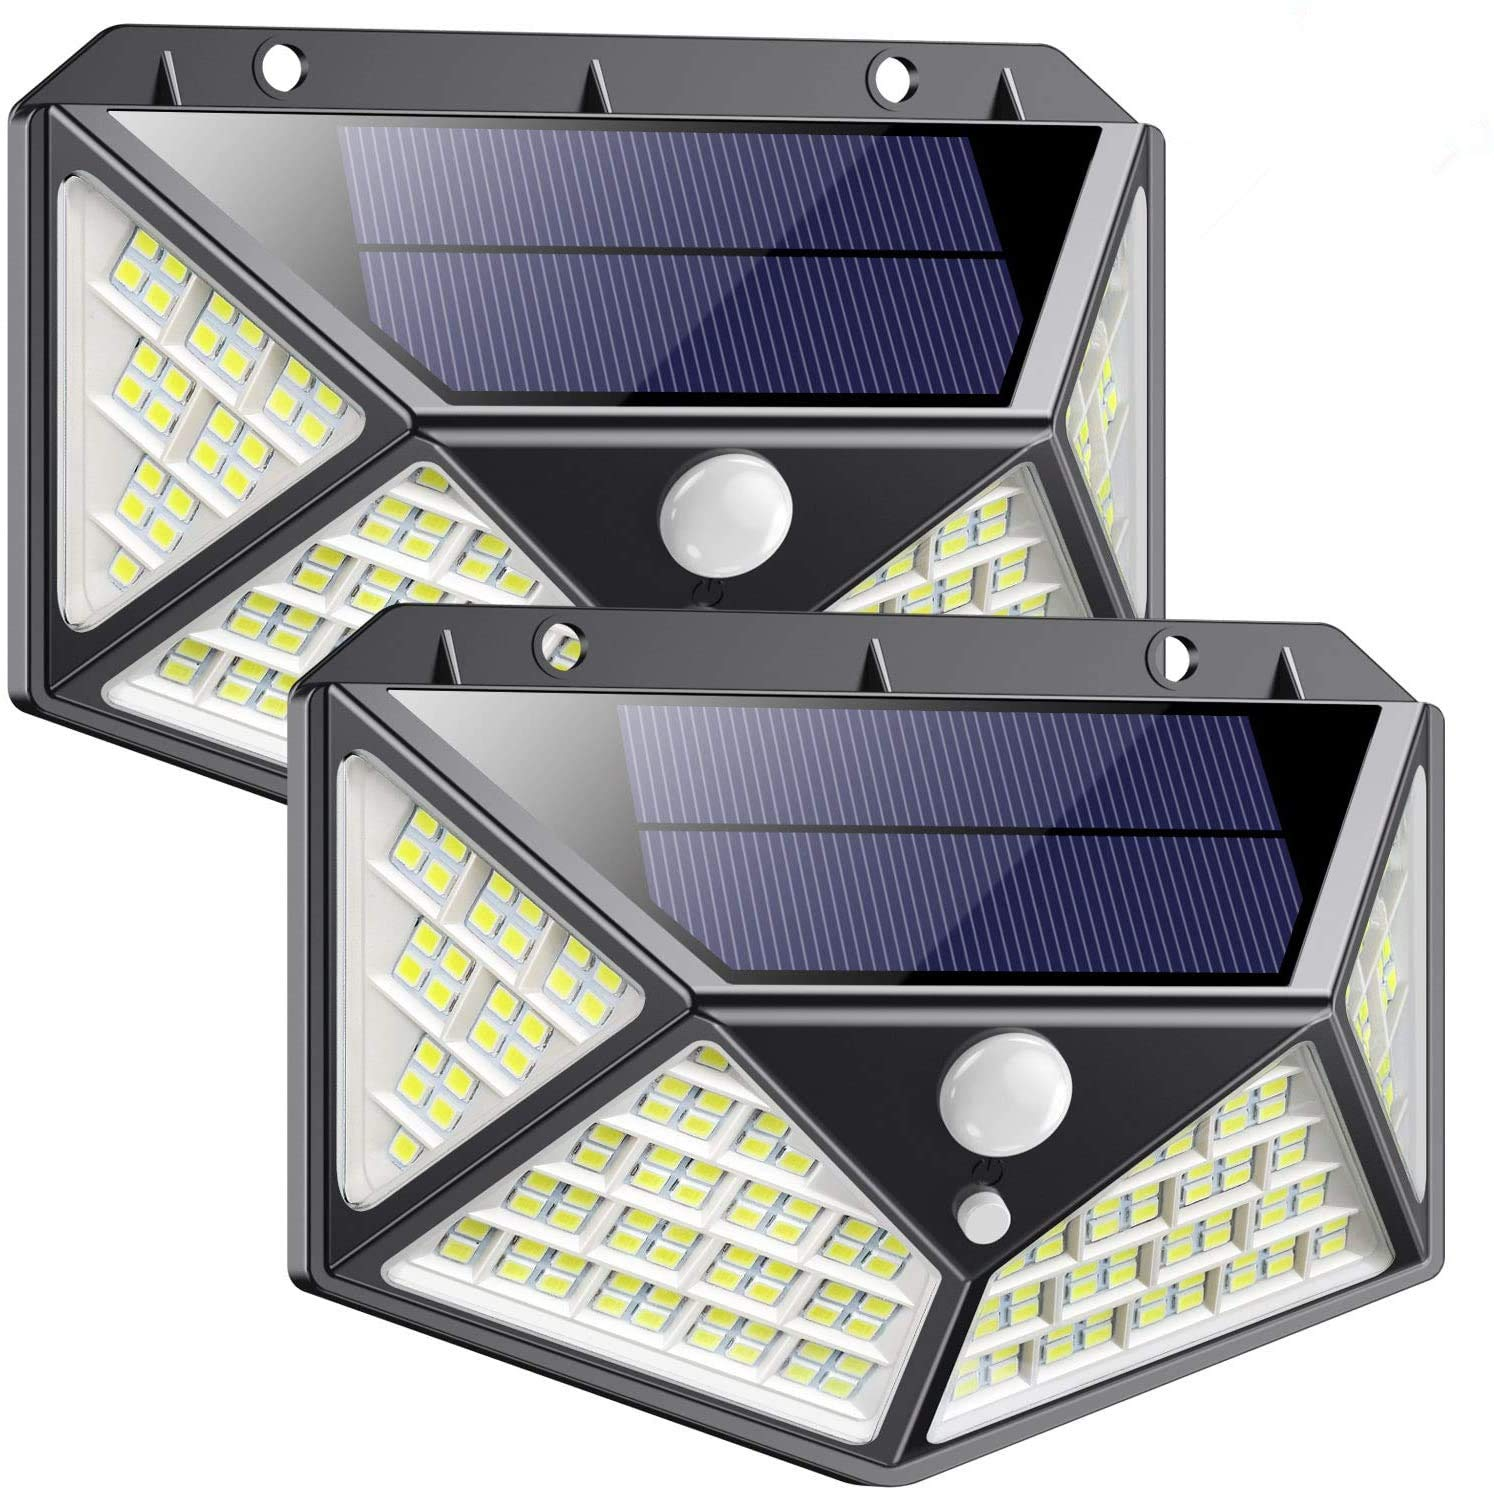 Solar Lights Outdoor 162 LED, QTshinee【2020 Newest Version】Solar Powered Lights 270º Wide Angle Lighting with Motion Sensor LED Waterproof Solar Security Lights Solar Wall Lights with 3 Modes[2 Pack]